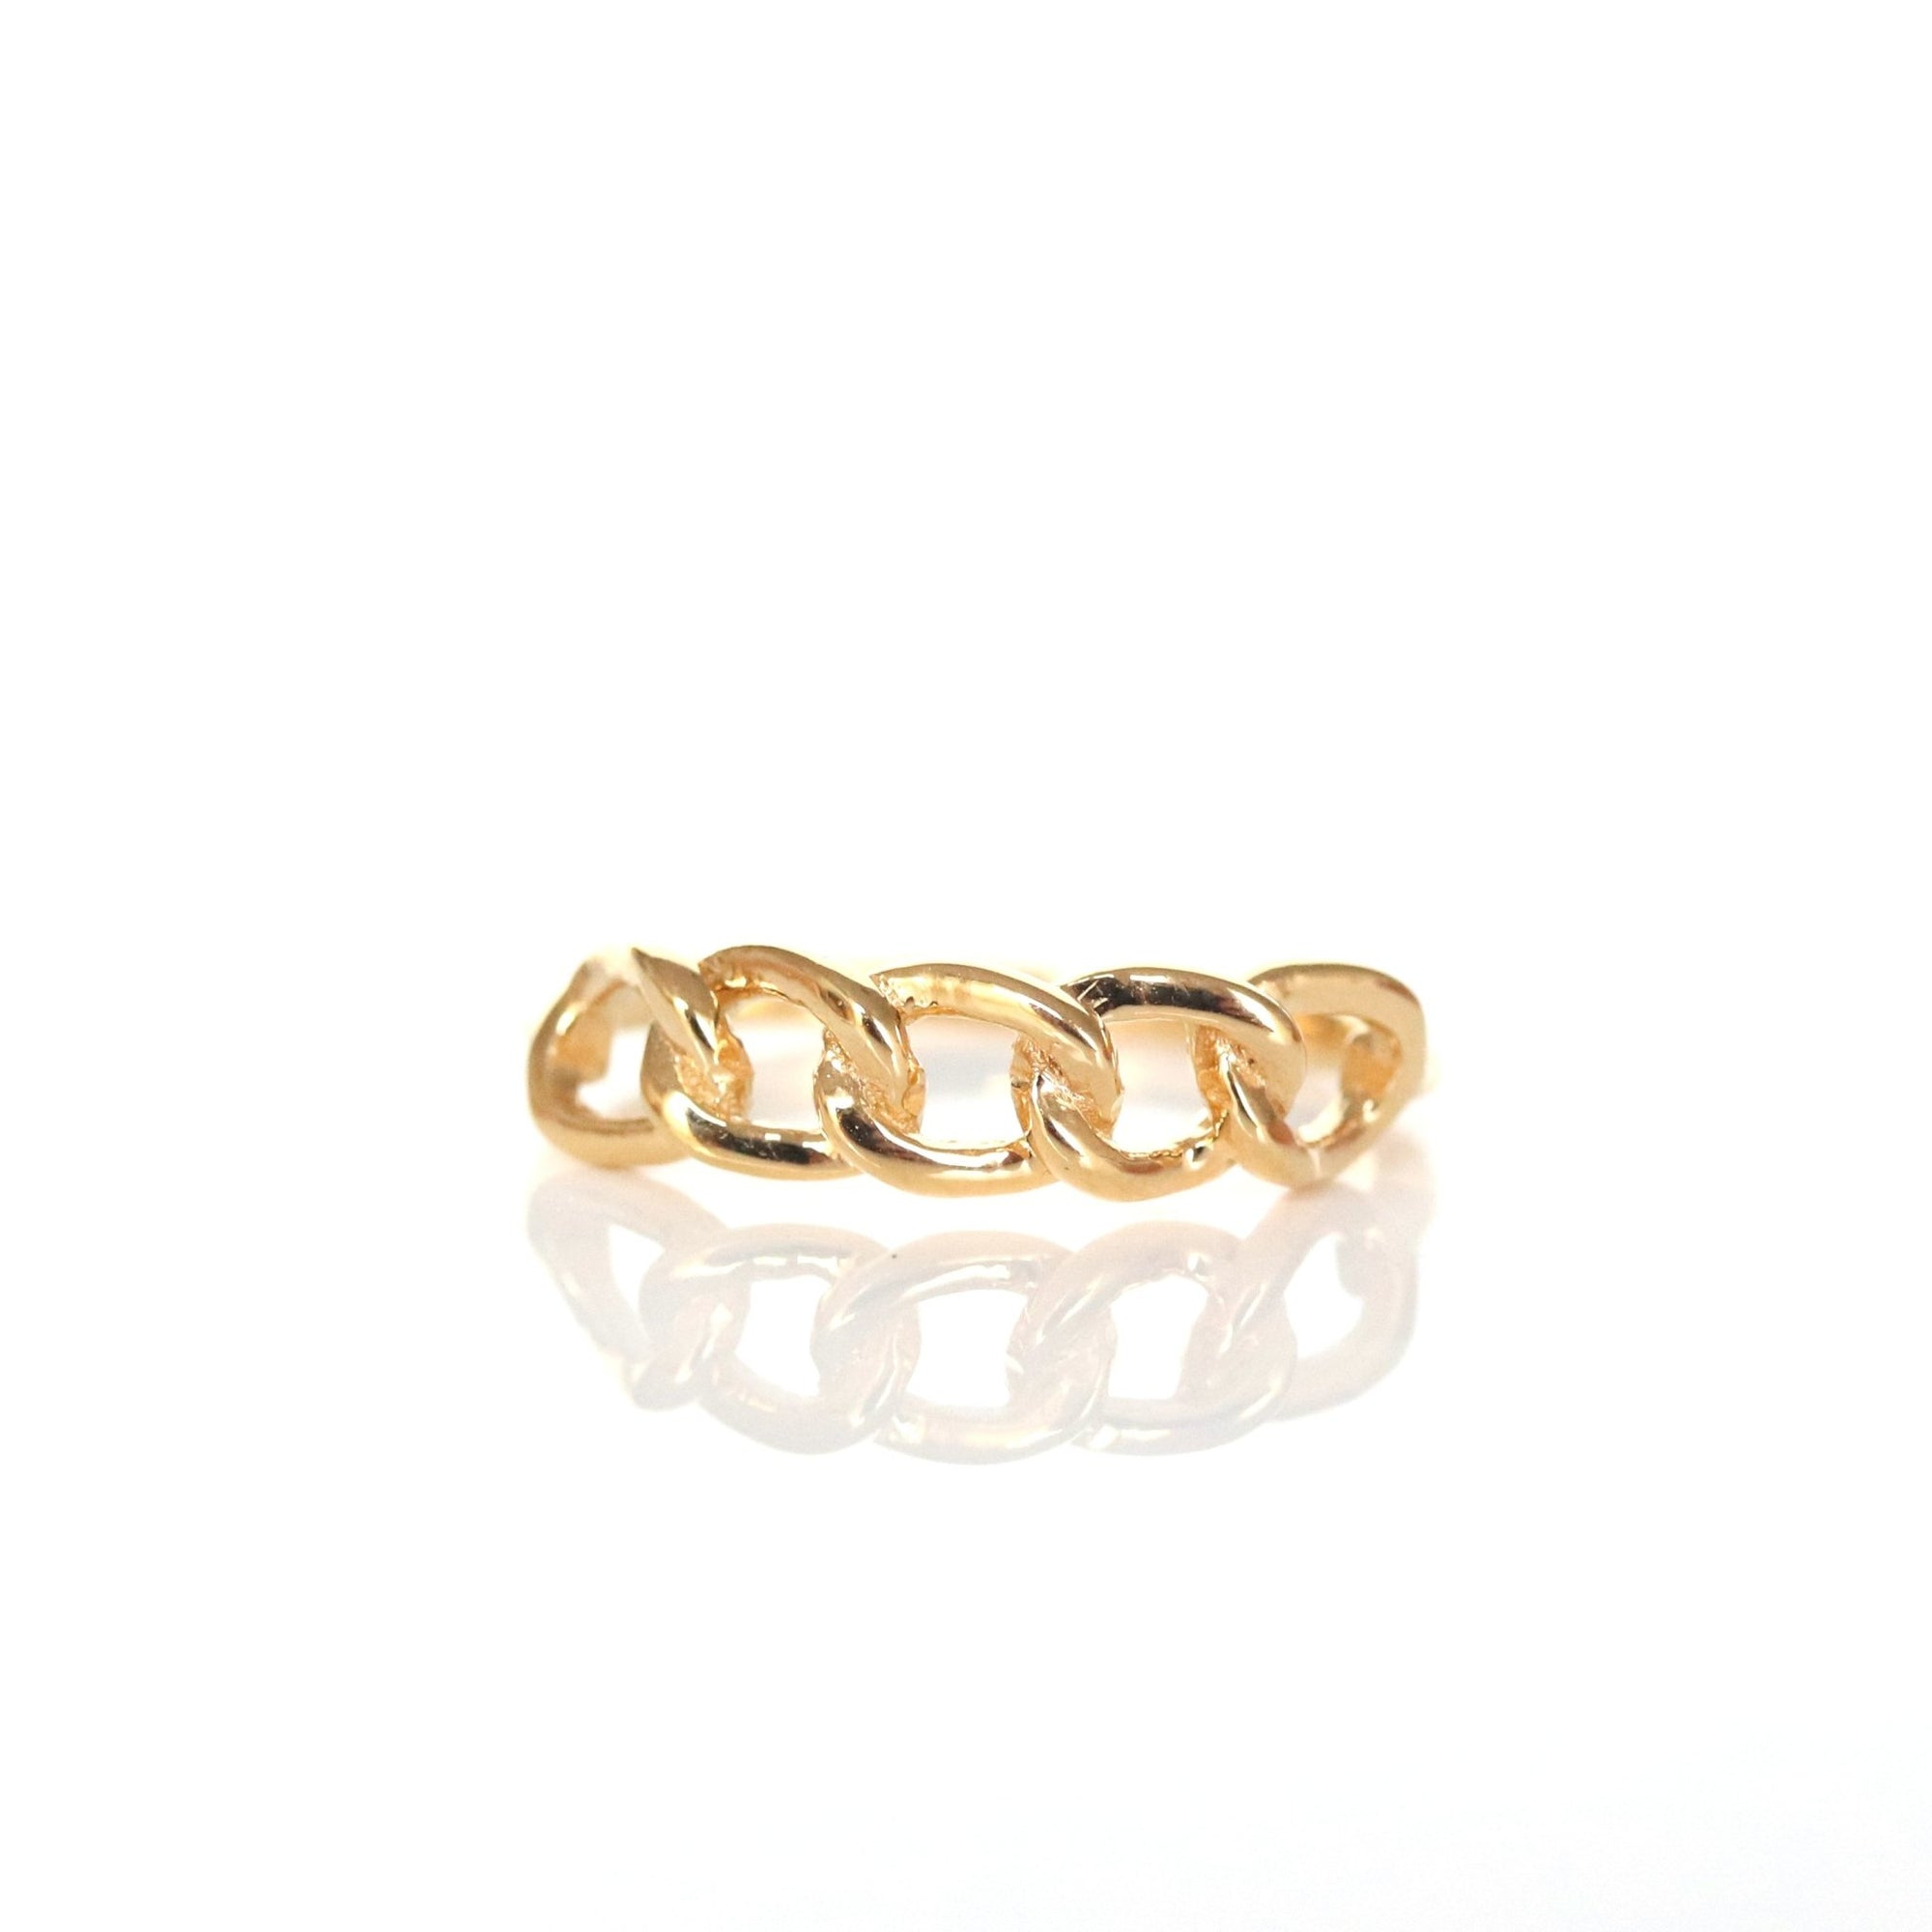 POISE CABLE LINK RING - GOLD - SO PRETTY CARA COTTER